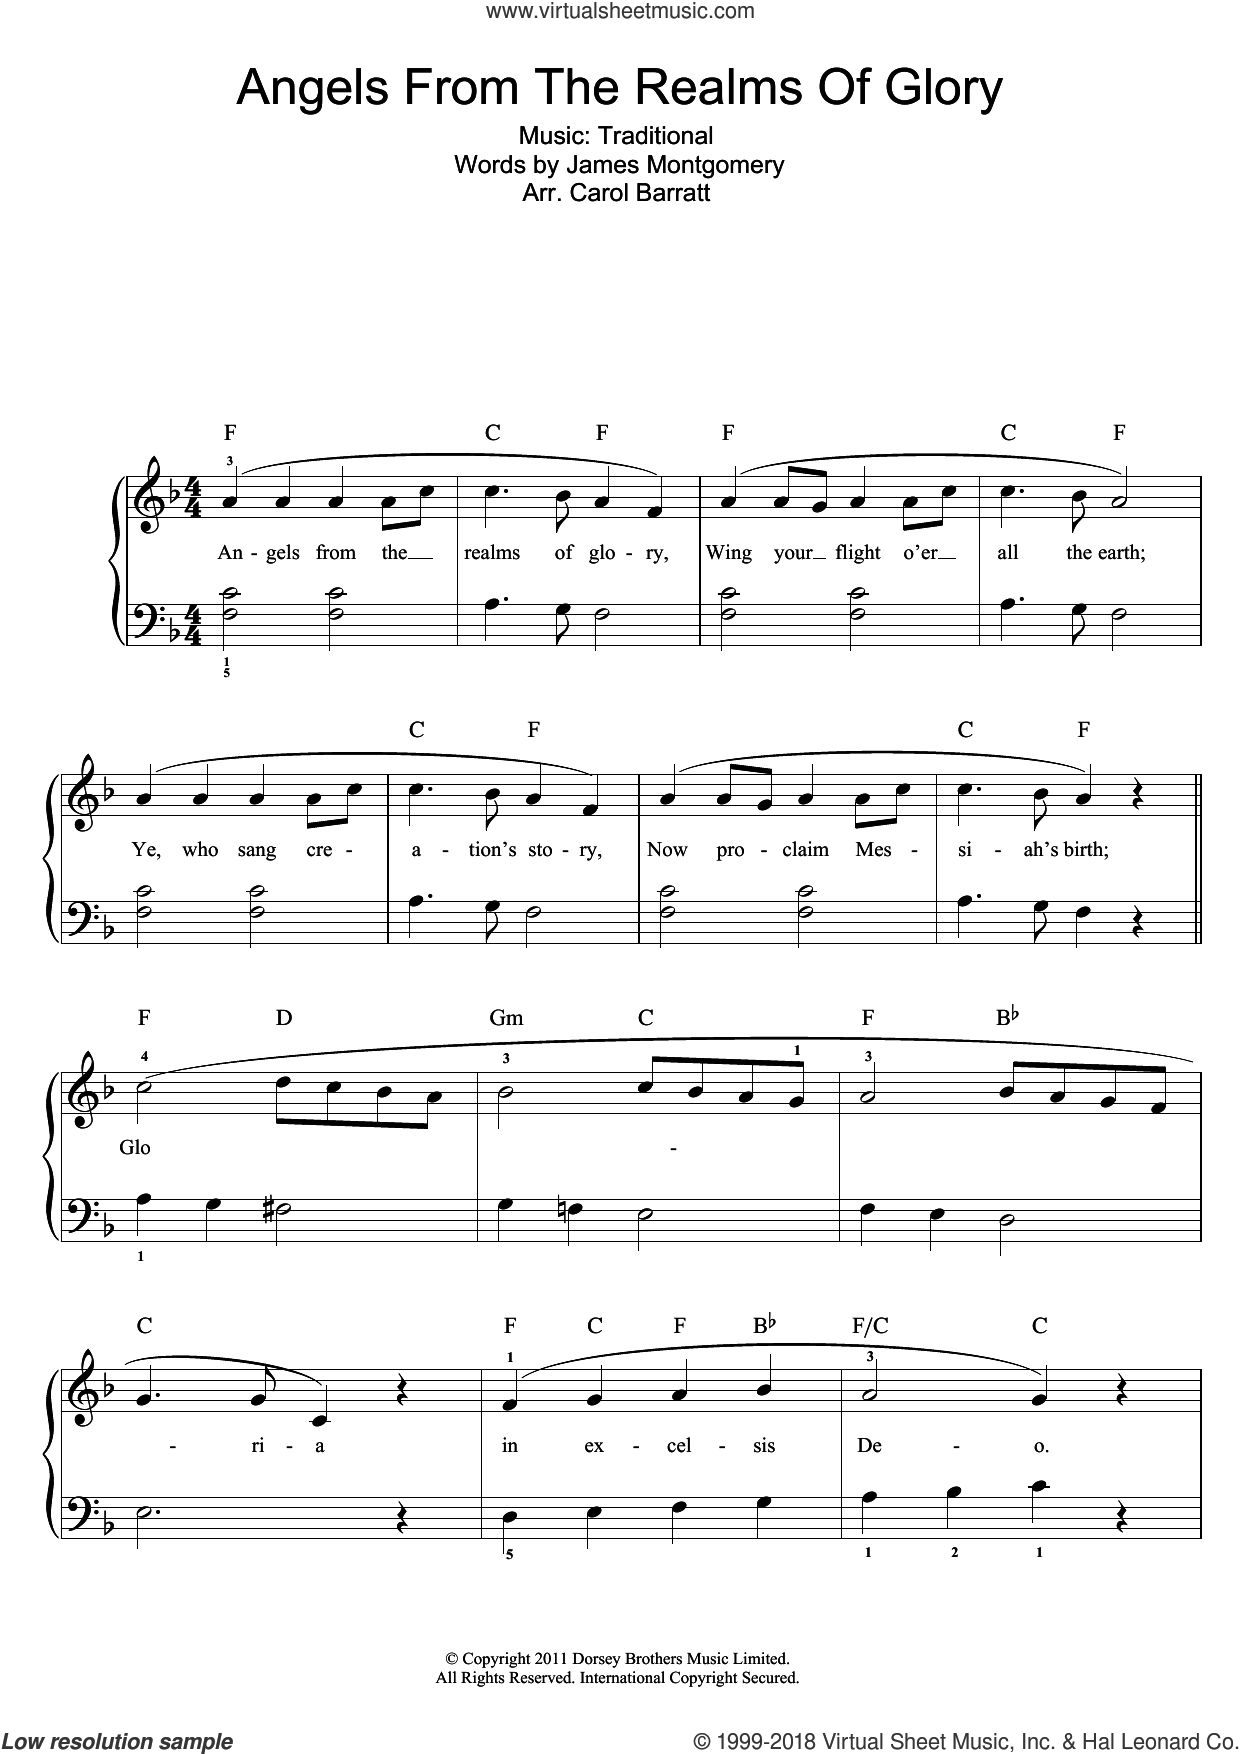 Angels From The Realms Of Glory sheet music for voice and piano